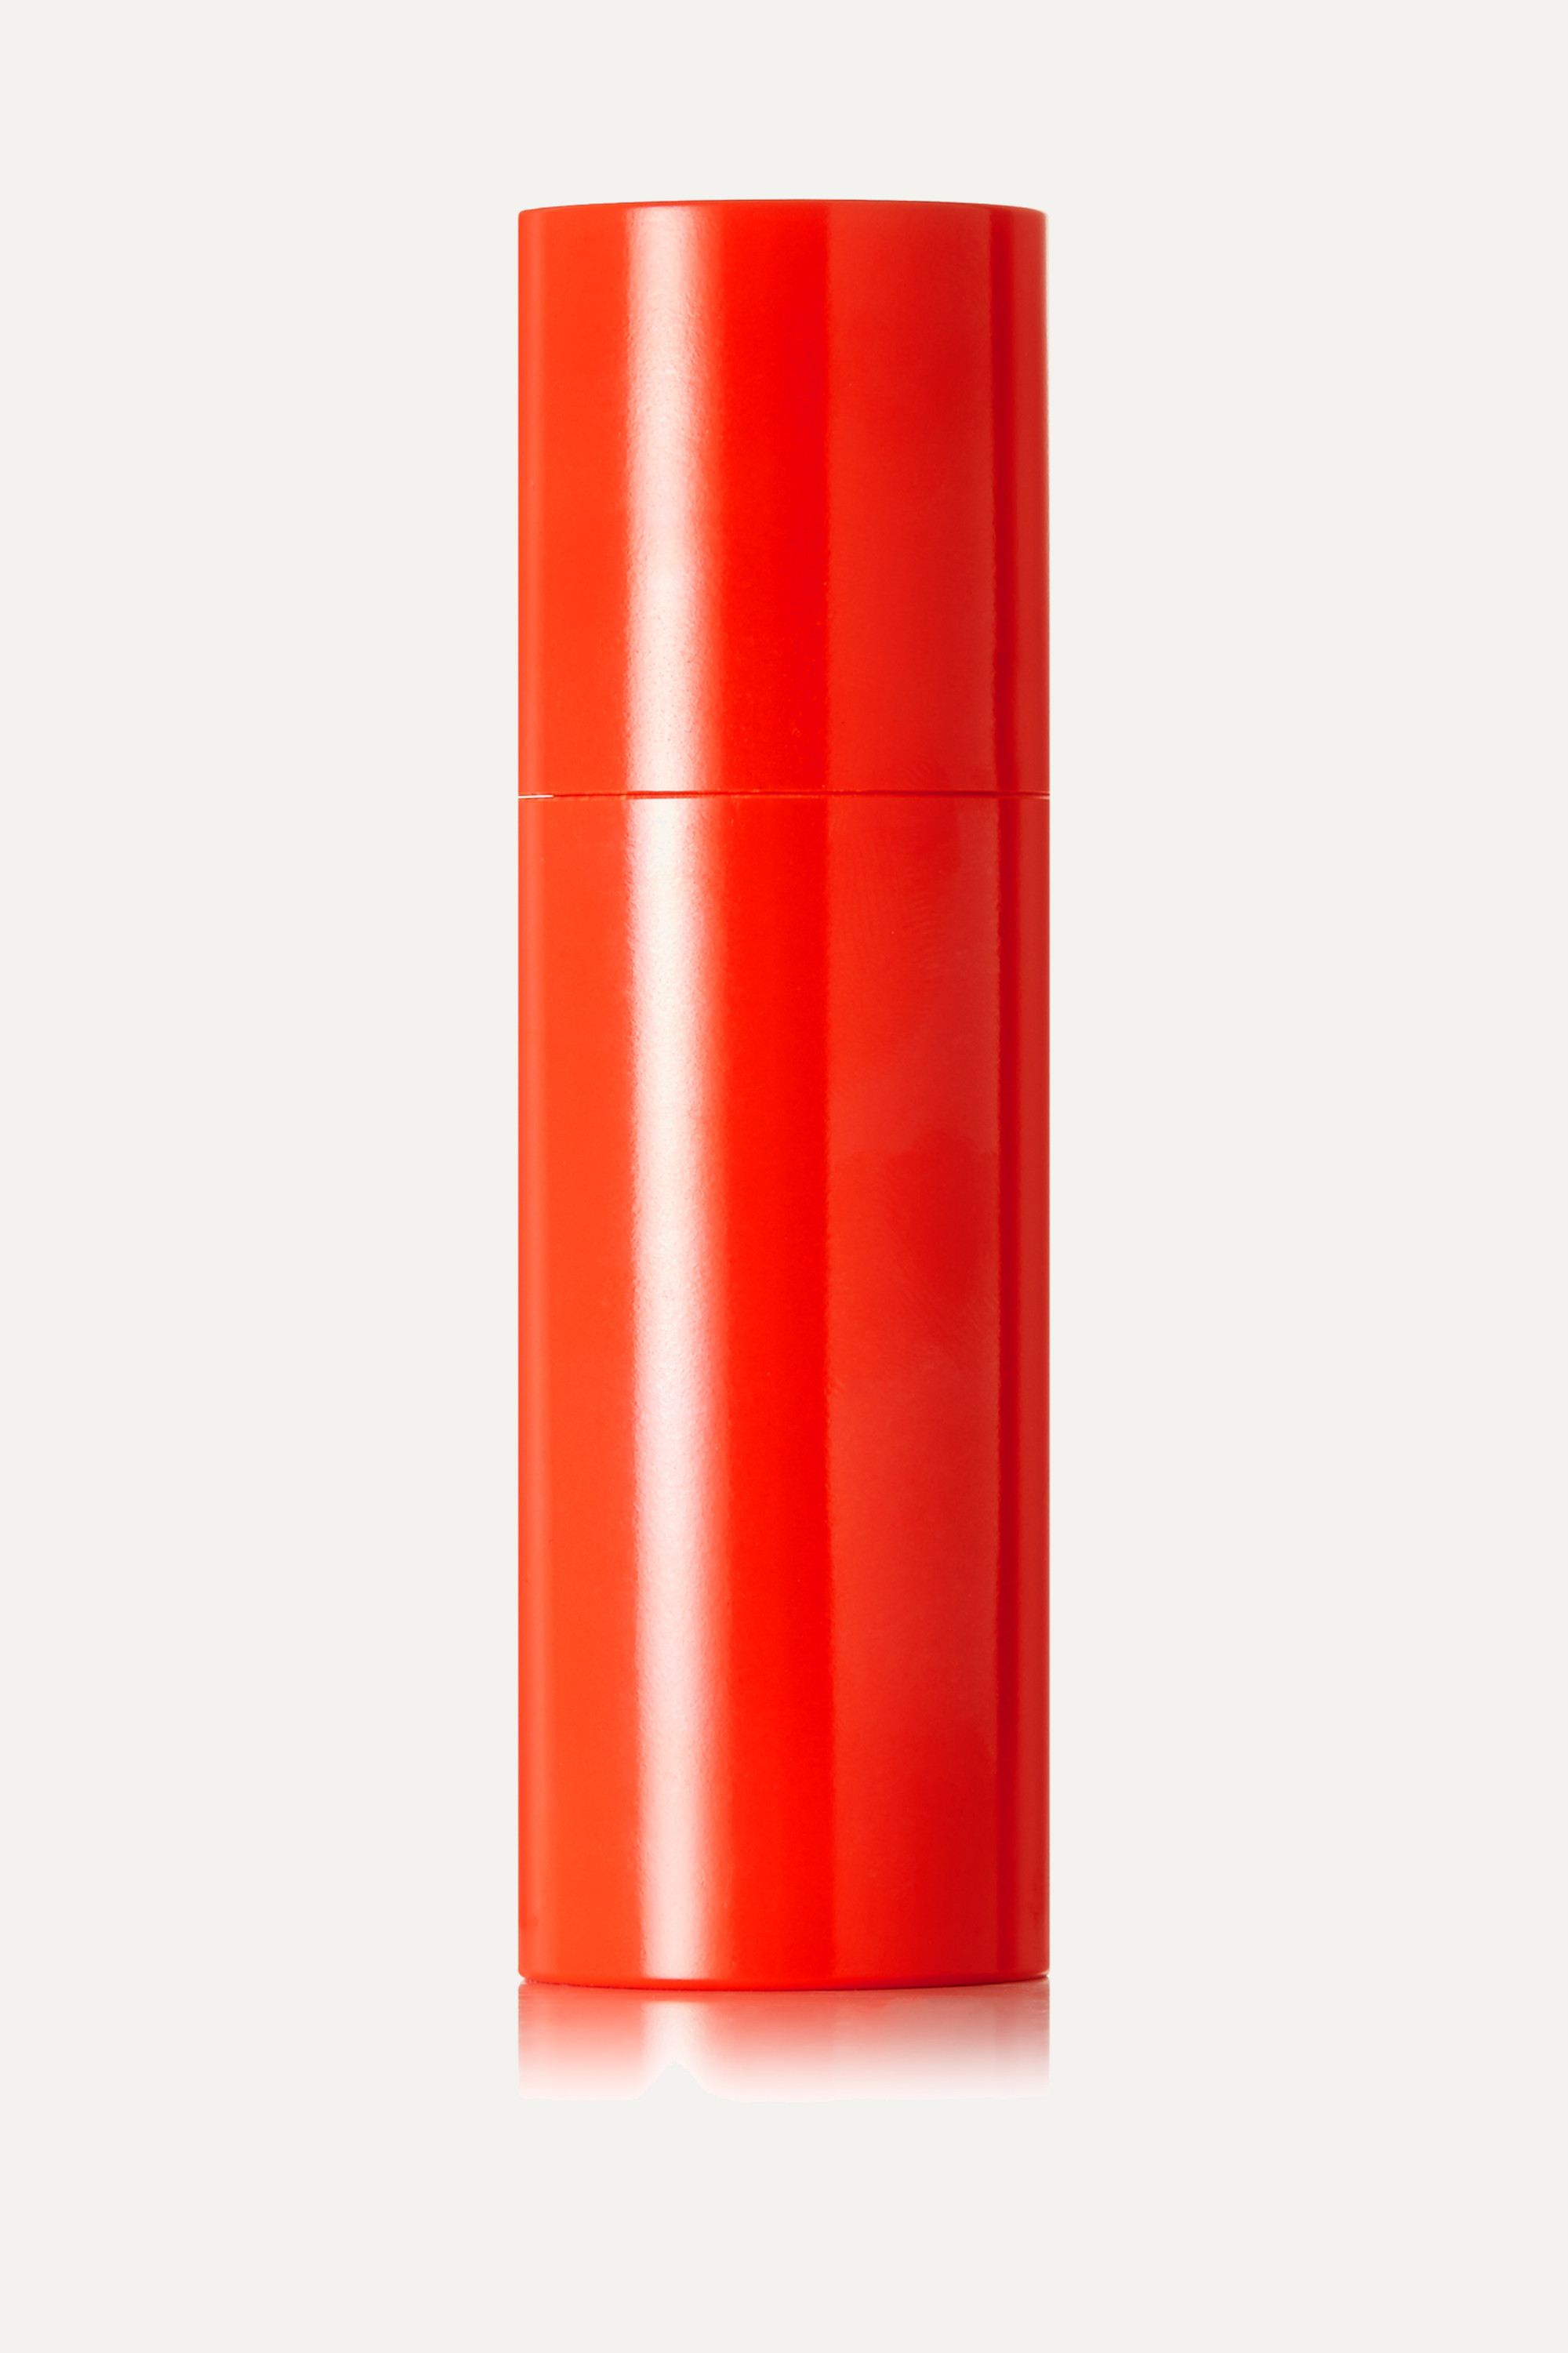 Frederic Malle Travel Spray Case - Red